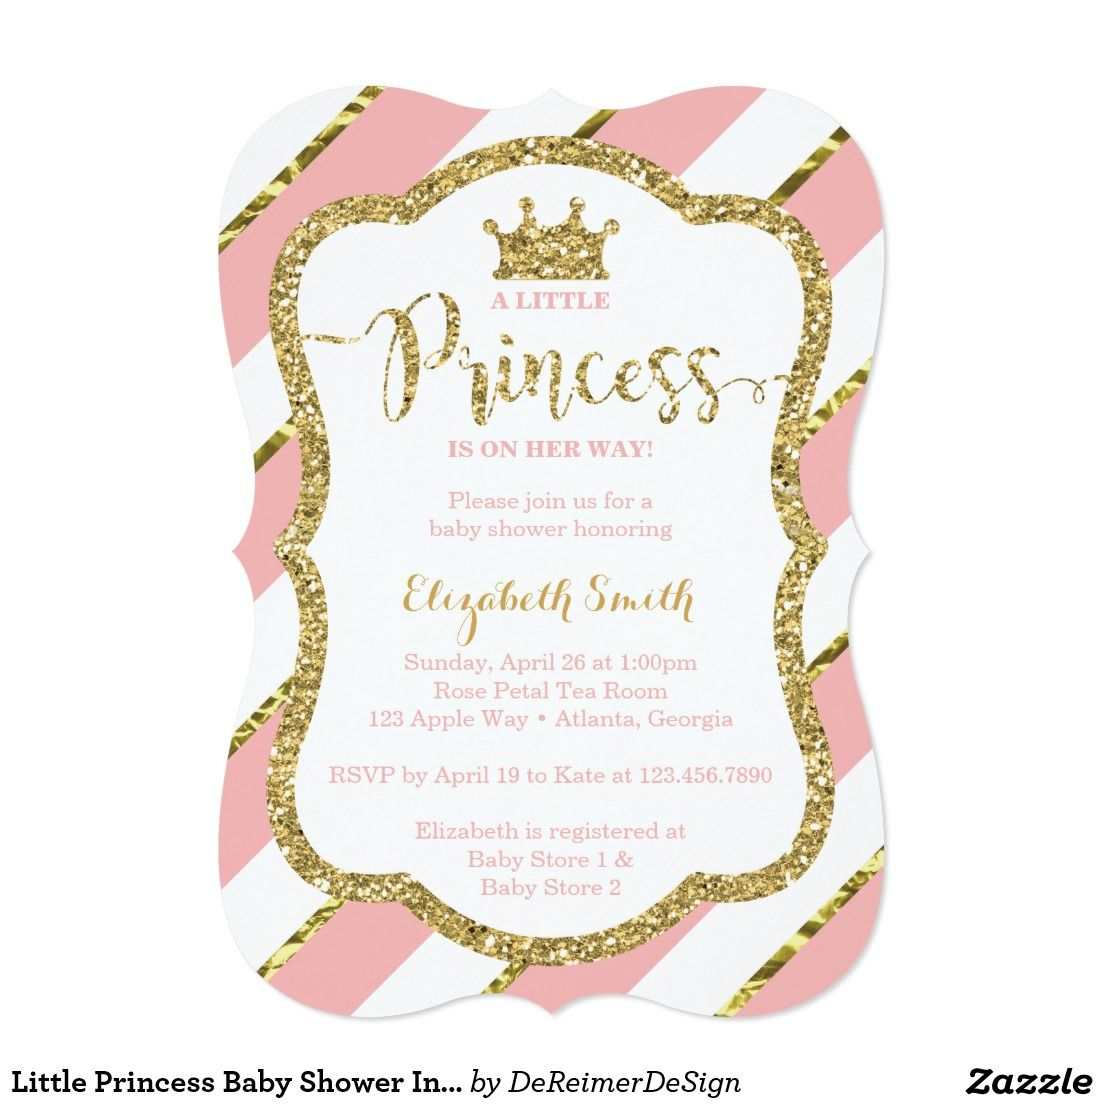 Little Princess Baby Shower Invitation, Pink, Gold Card | Baby ...